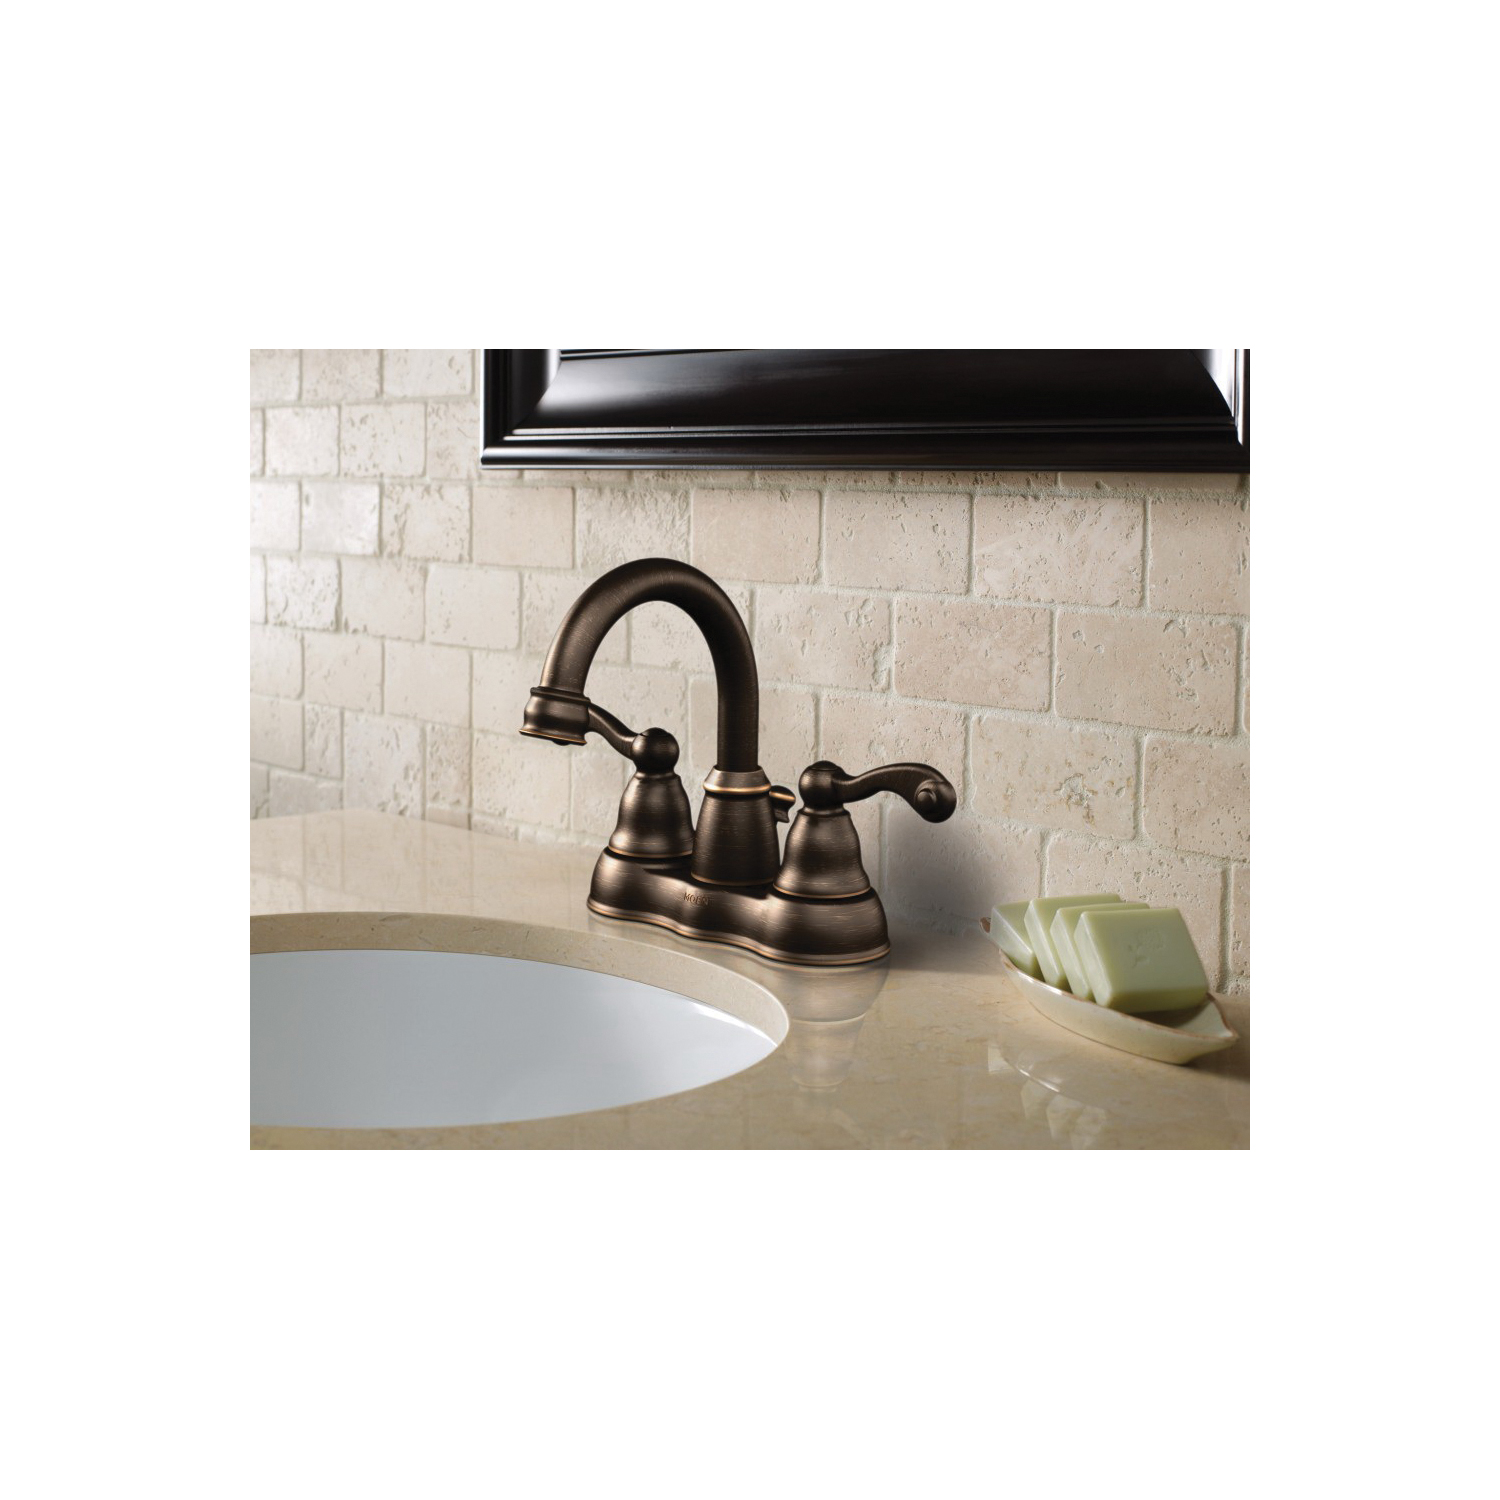 Moen® WS84003 Centerset Bathroom Faucet, Traditional®, Chrome Plated, 2 Handles, 50/50 Pop-Up Drain, 1.2 gpm